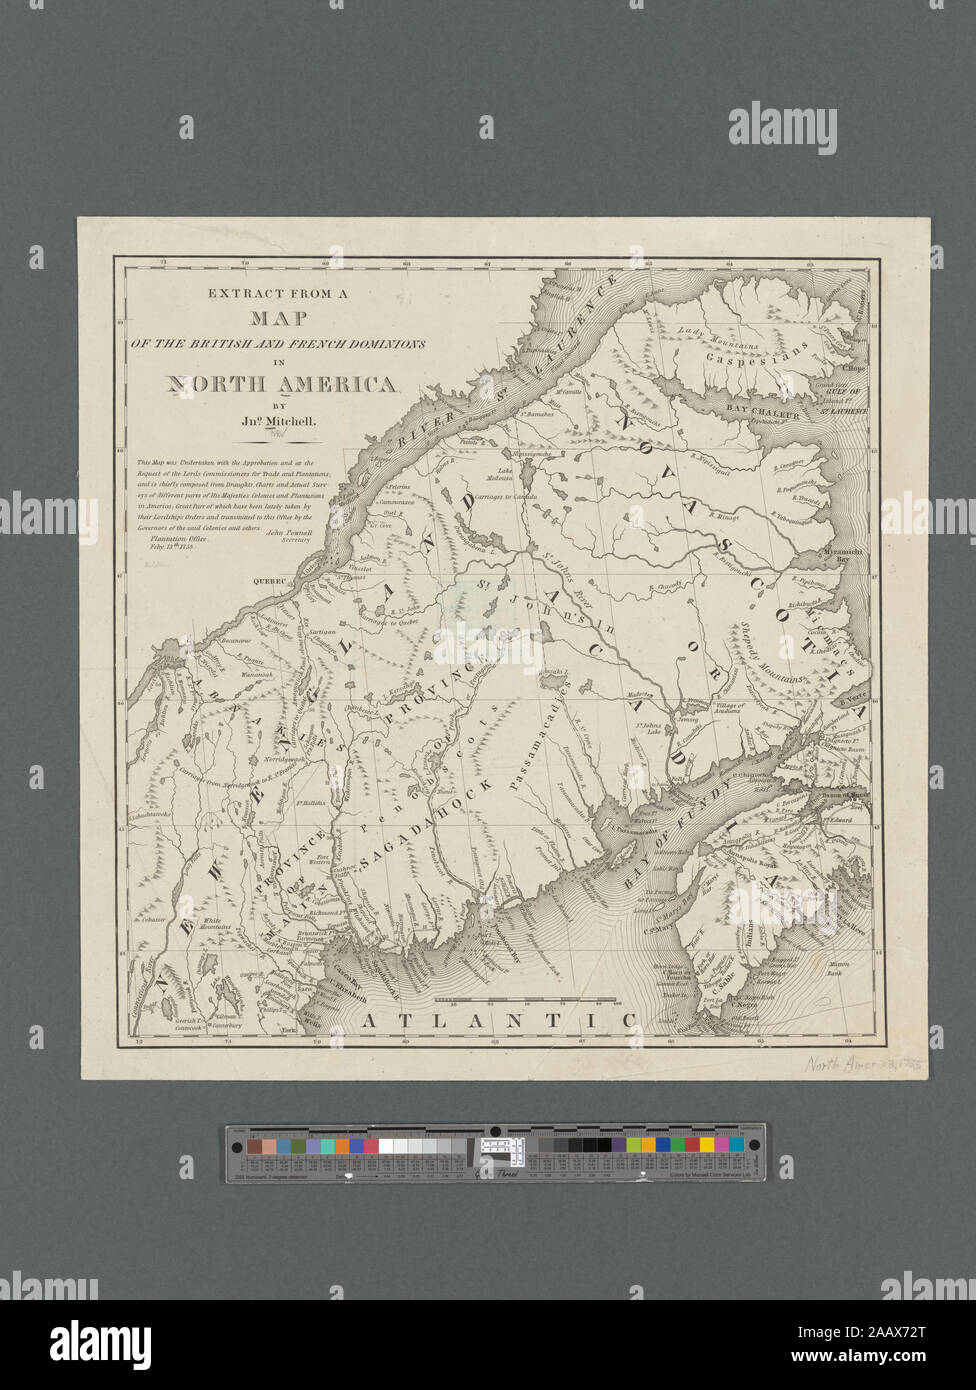 Extract from a map of the British and French dominions in ...